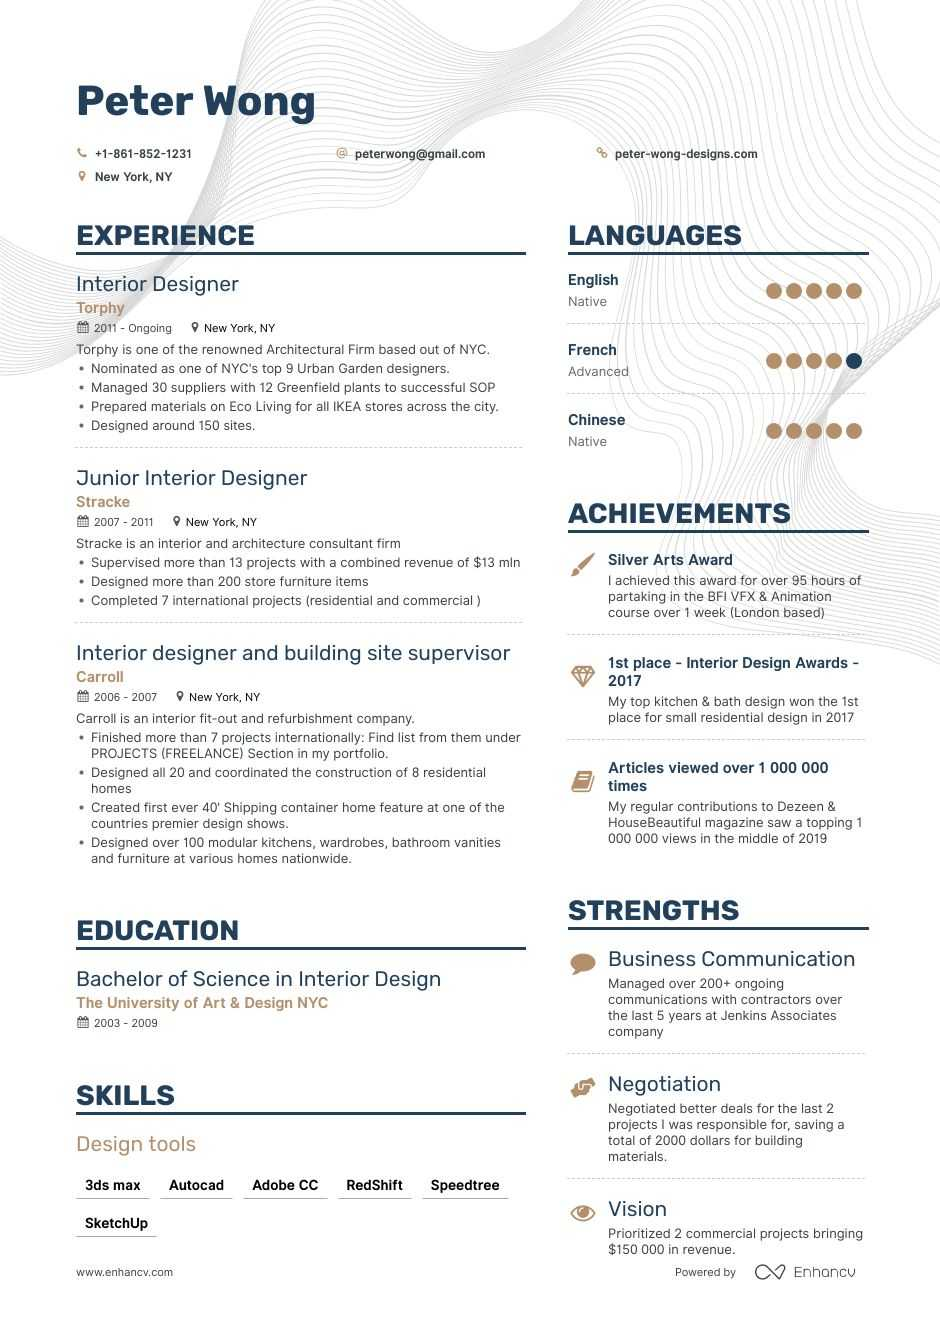 job winning interior designer resume examples samples tips enhancv design rigger guest Resume Interior Design Resume Examples